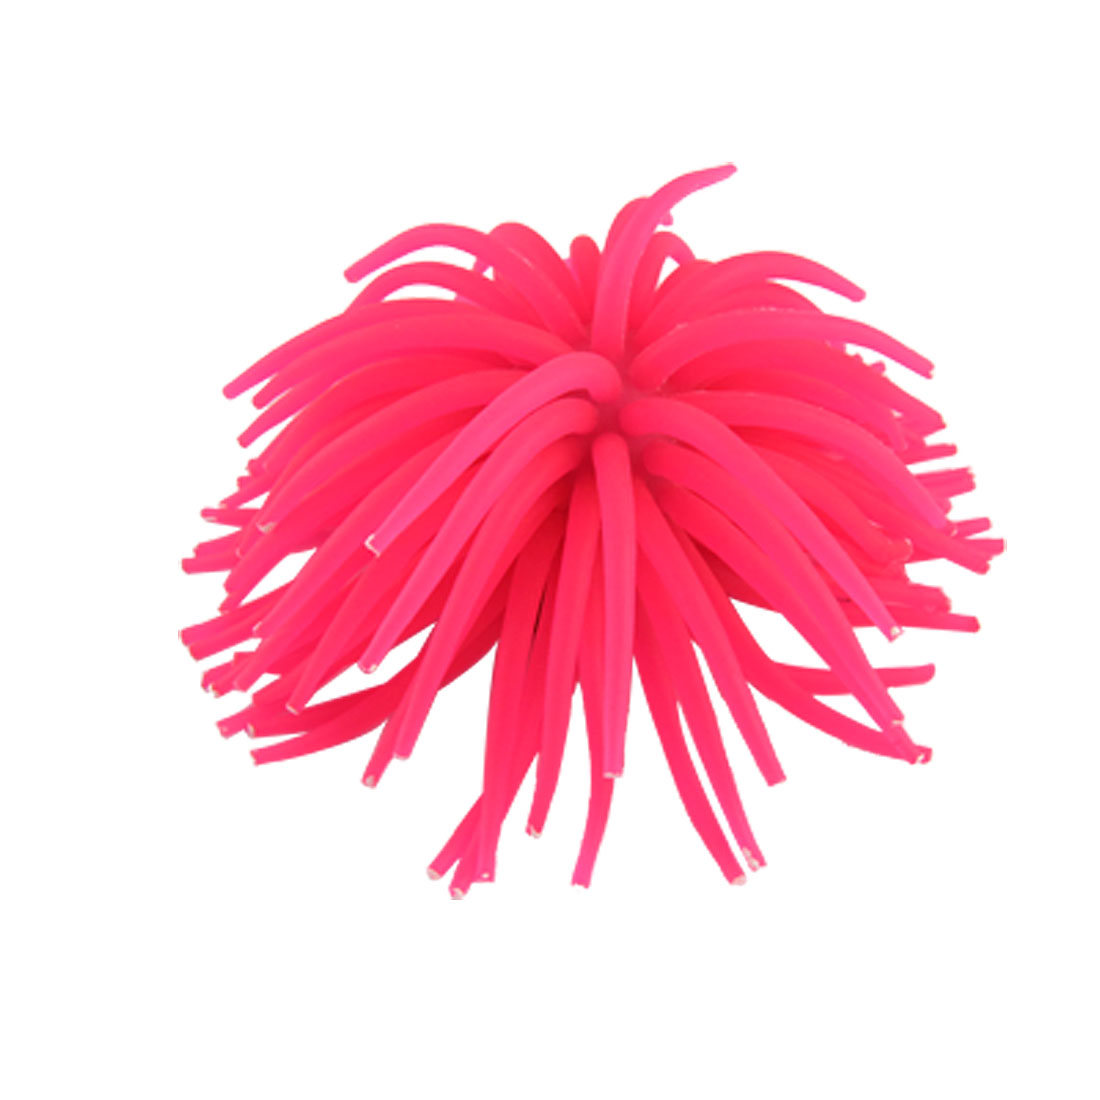 Hot Pink Coral Shaped Design Large Decorative Sea Urchins Ornament